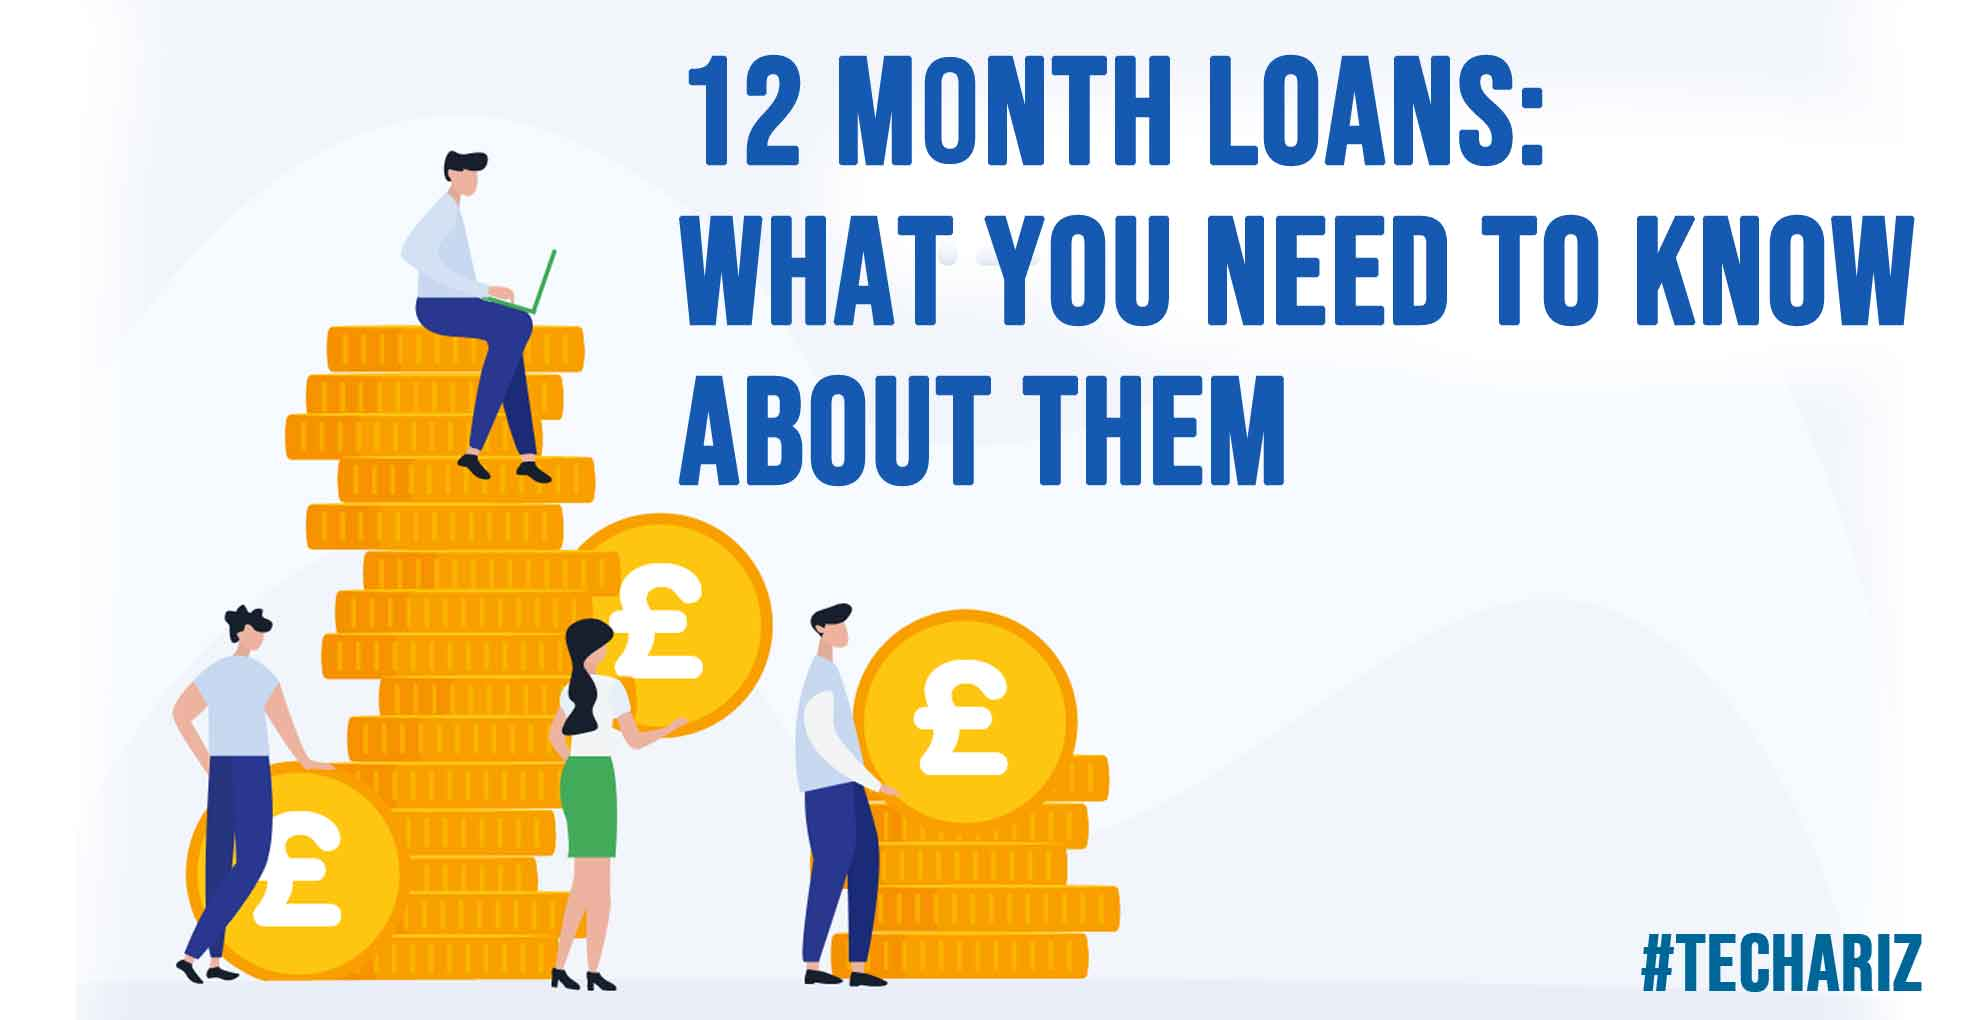 12 Month Loans What You Need To Know About Them